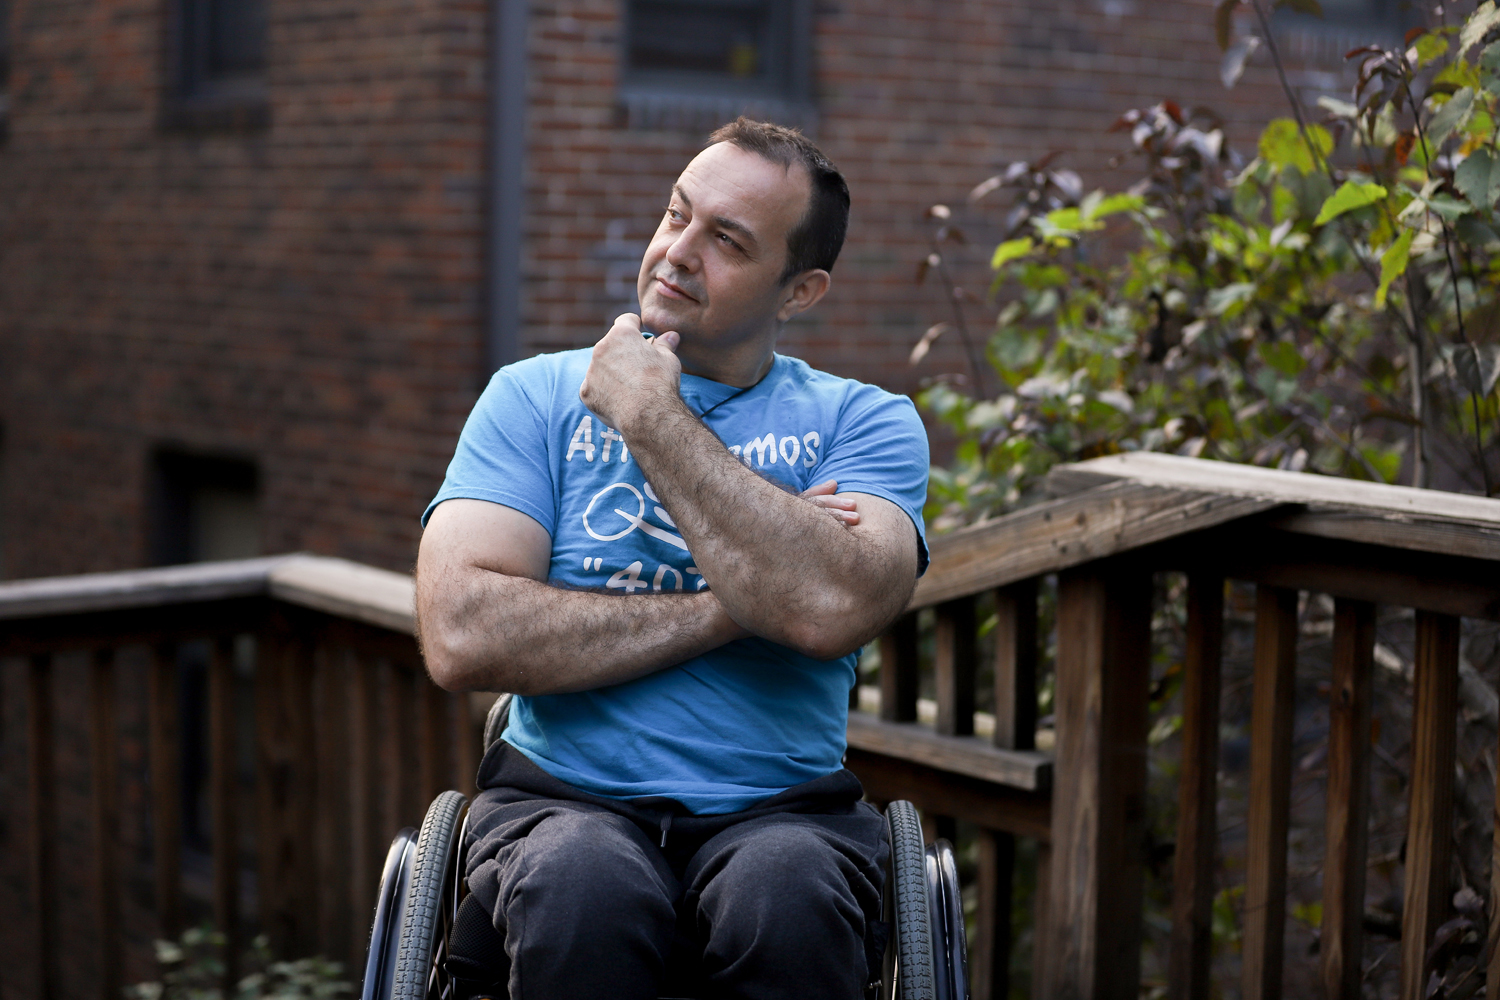 Attila Domos started handcycling in 2009 in preparation for the 2010 Pittsburgh marathon.